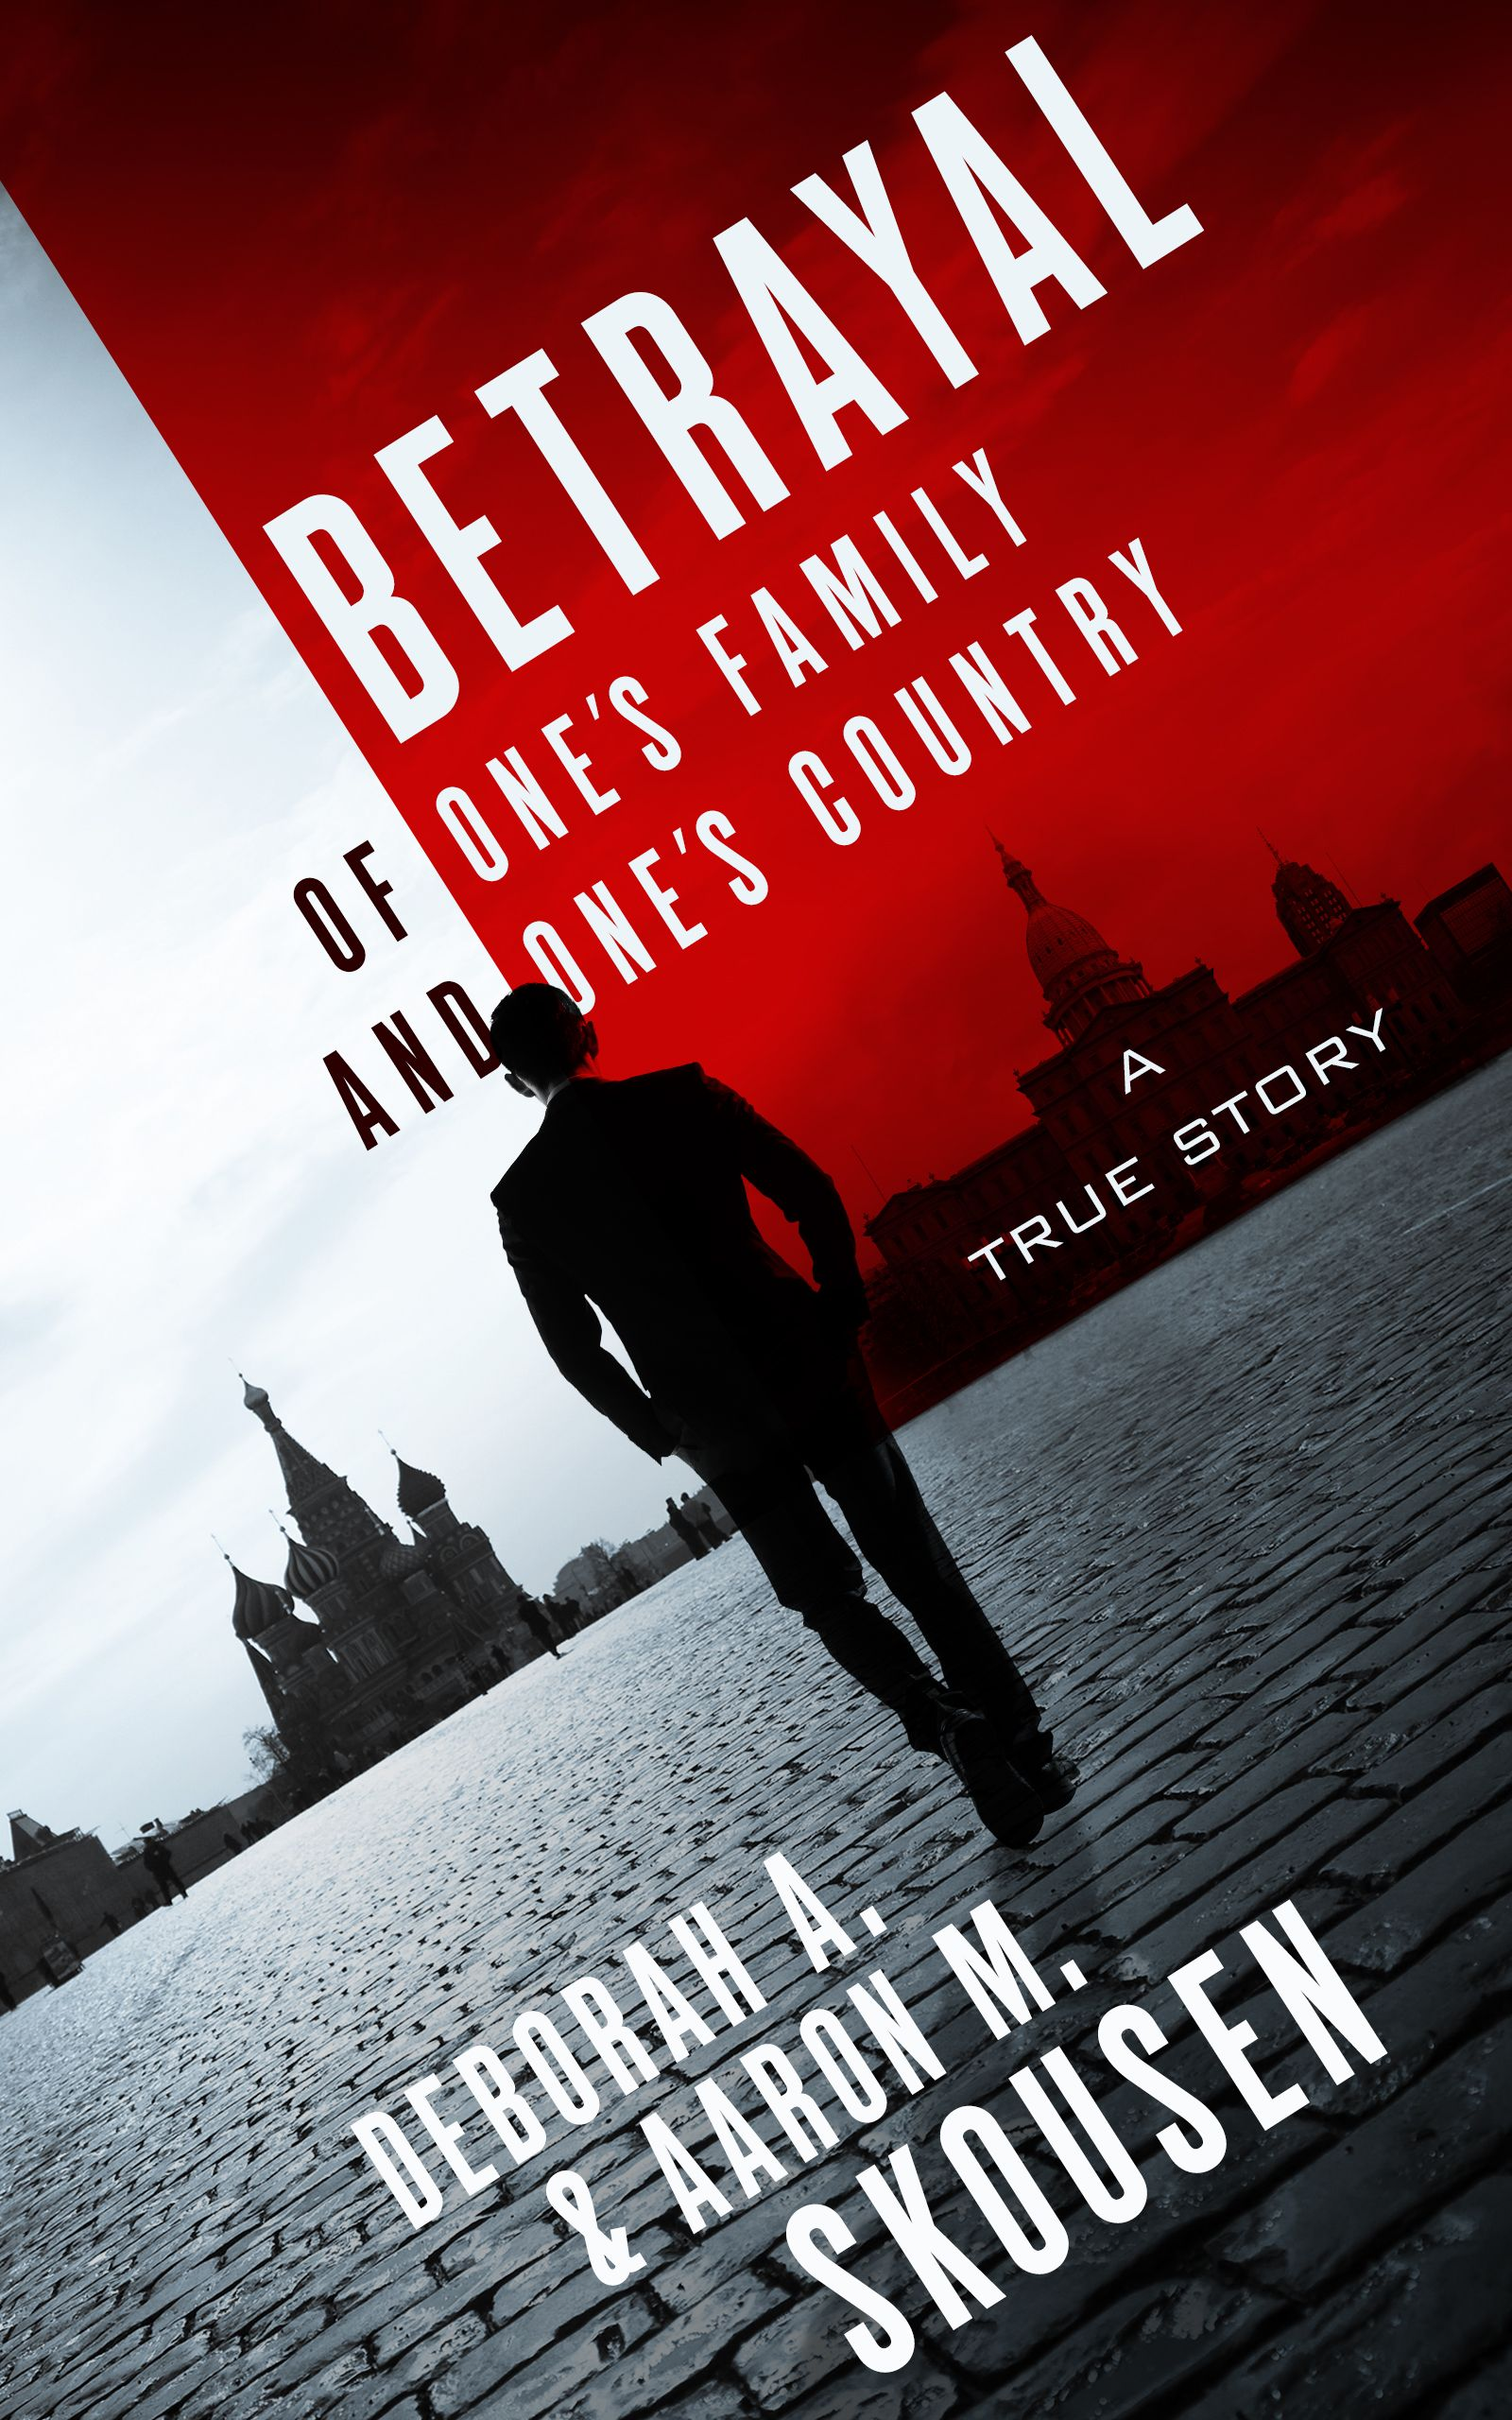 Poster design book - Book Cover Design For Betrayal Of One S Family And One S Country